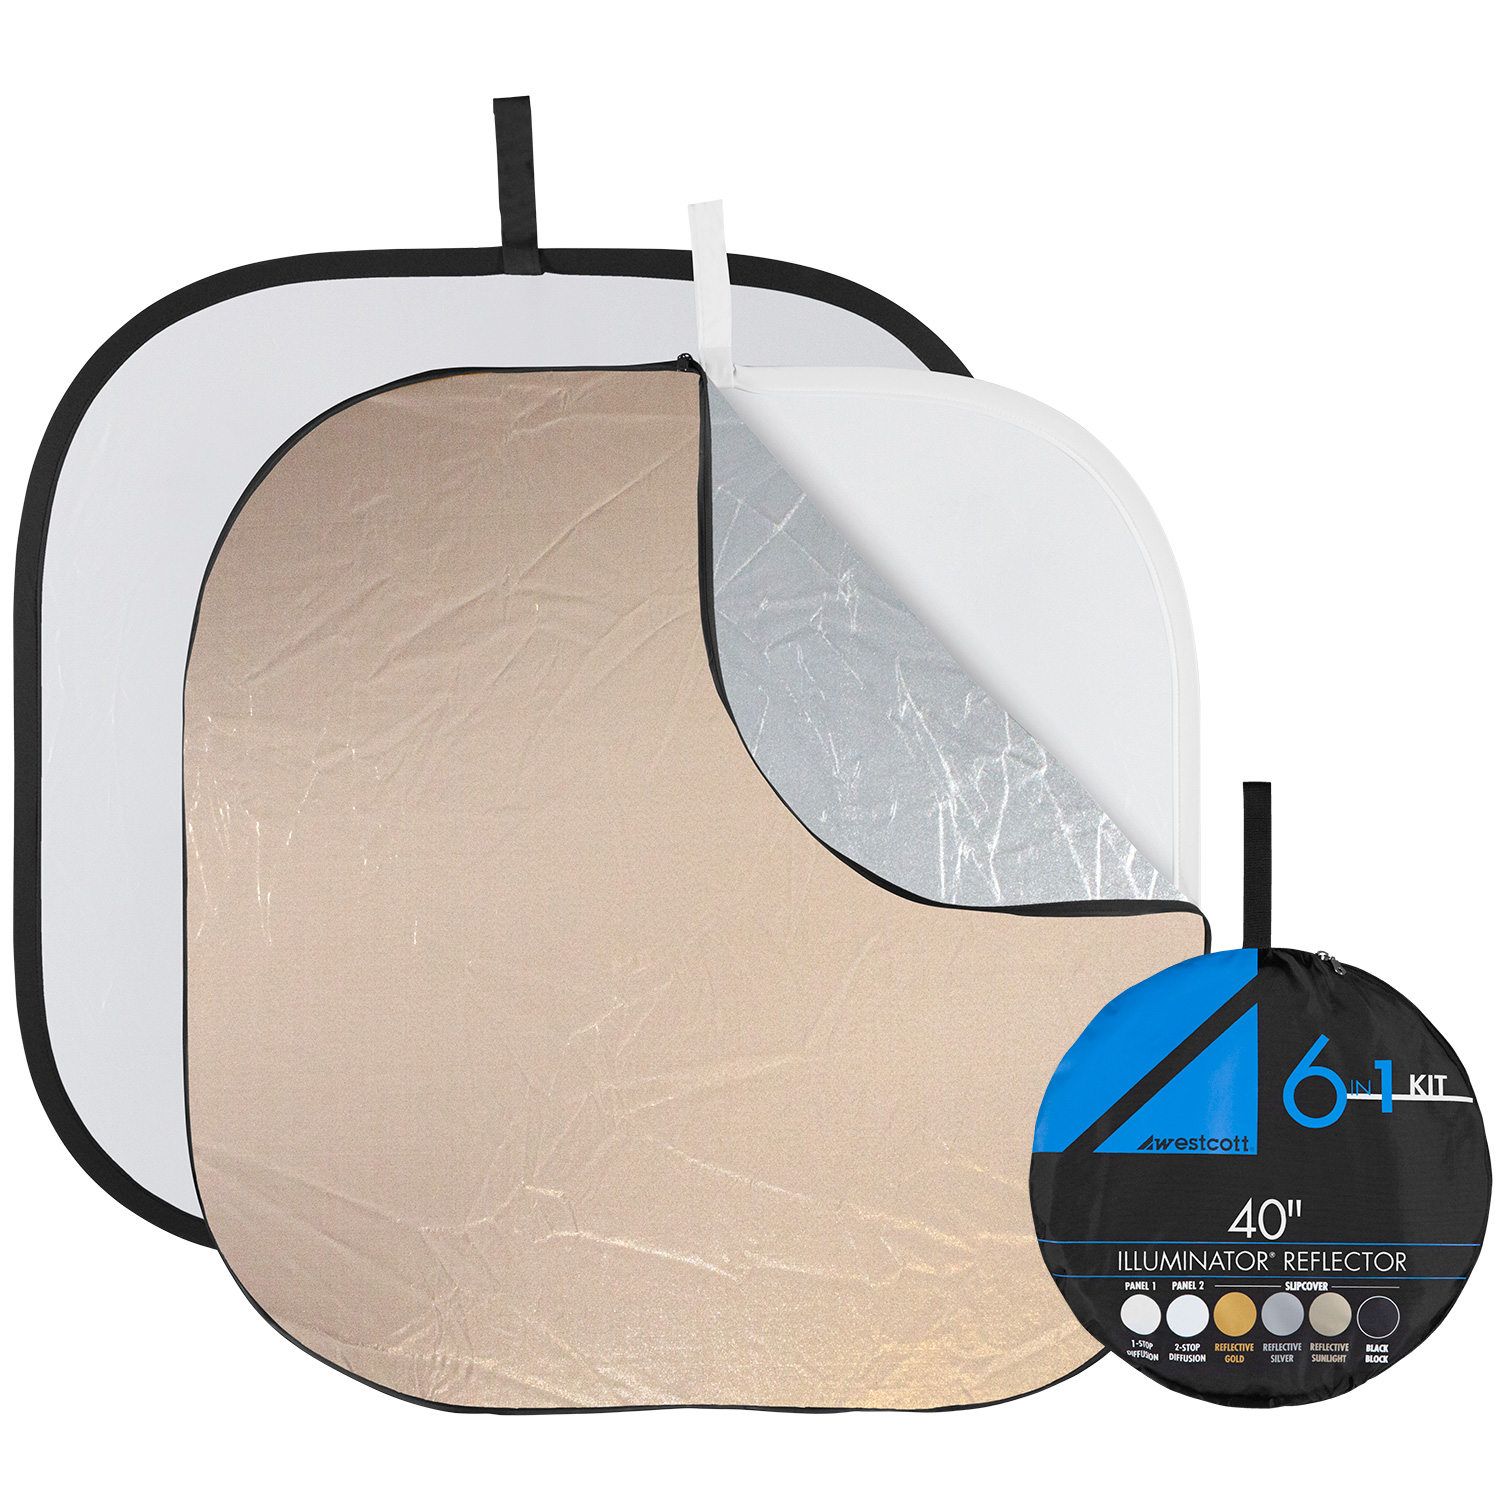 Illuminator 40-in. 6-in-1 Reflector Kit